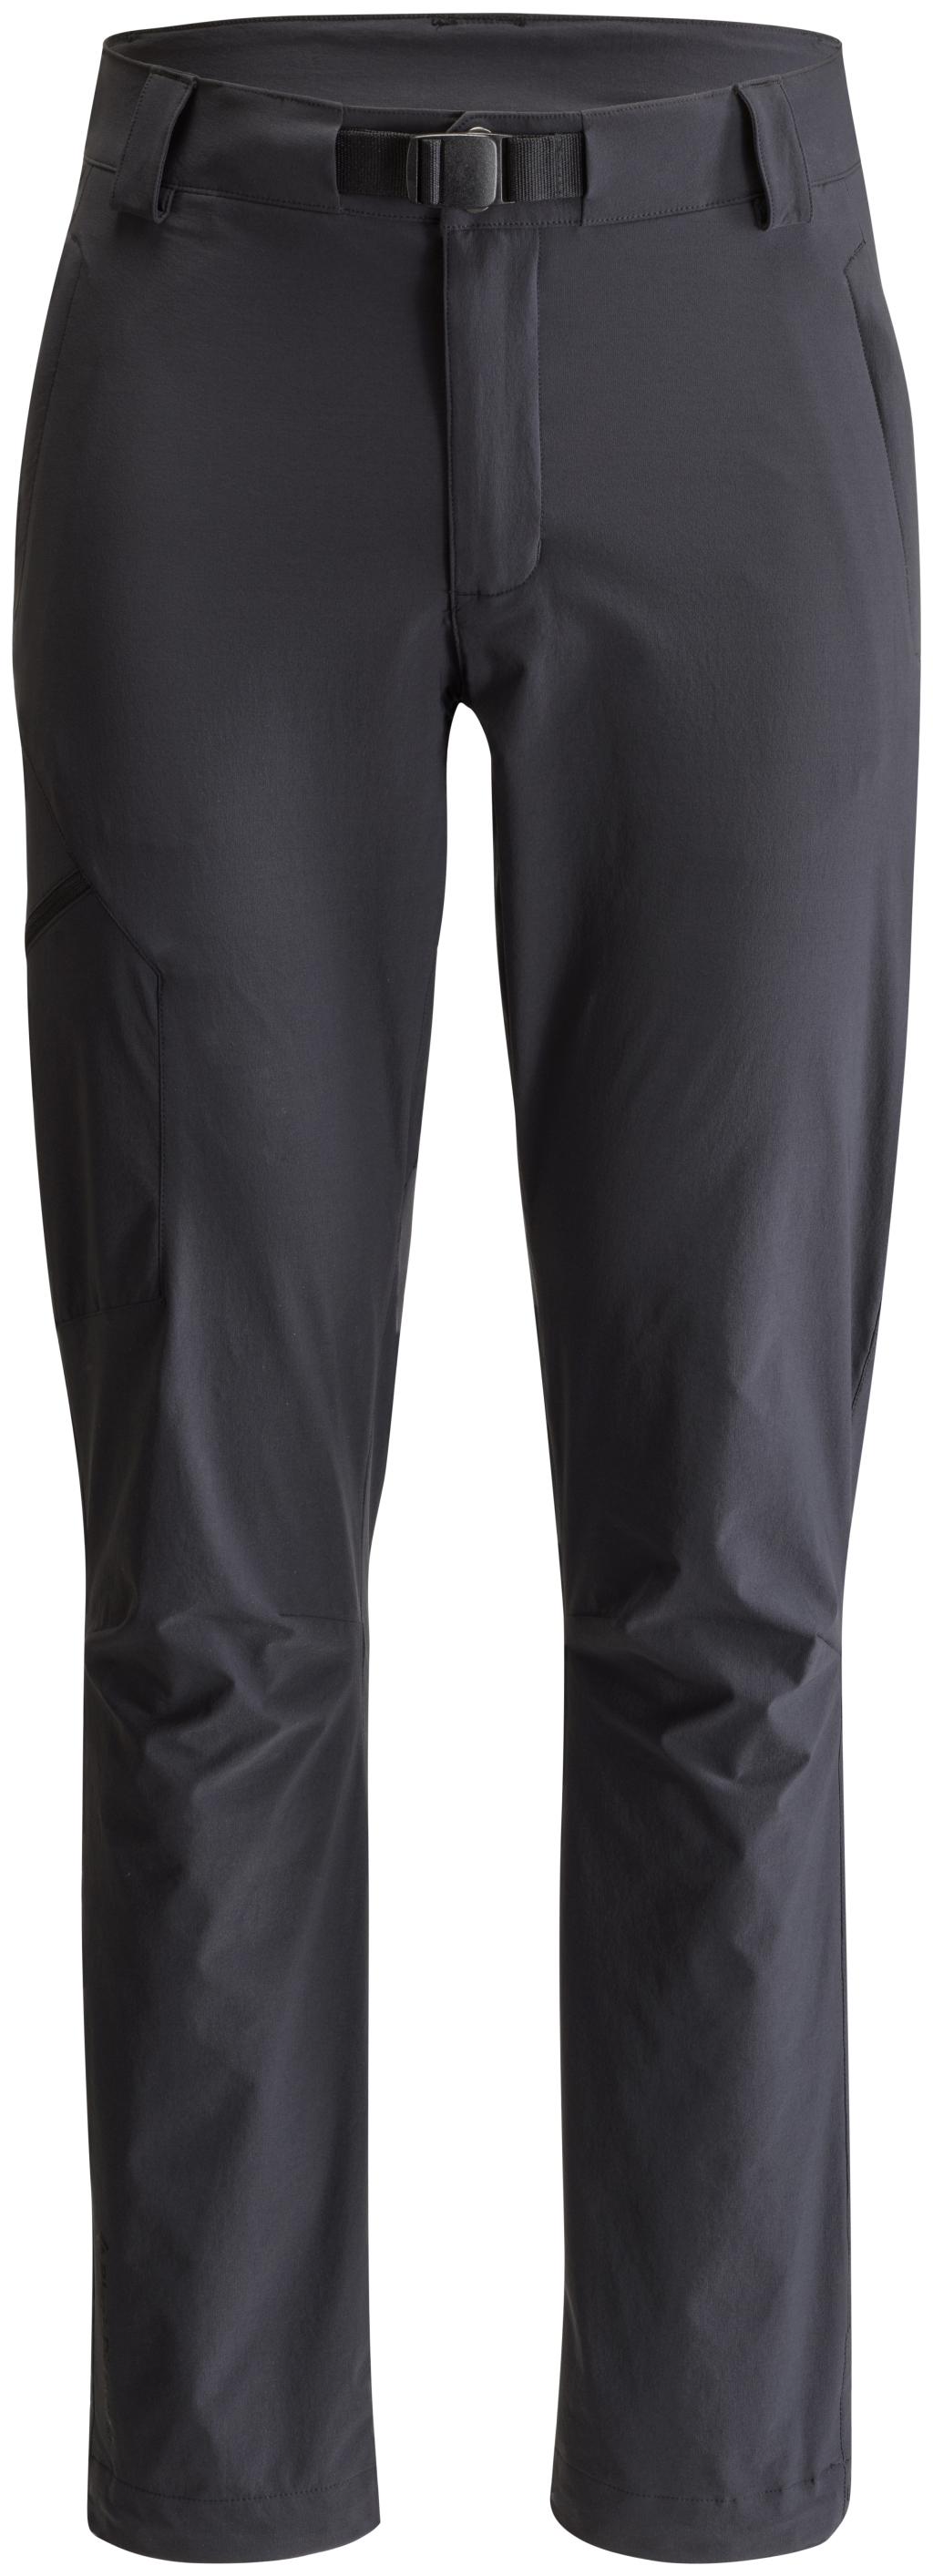 Black Diamond Alpine Softshell Pants Smoke-30